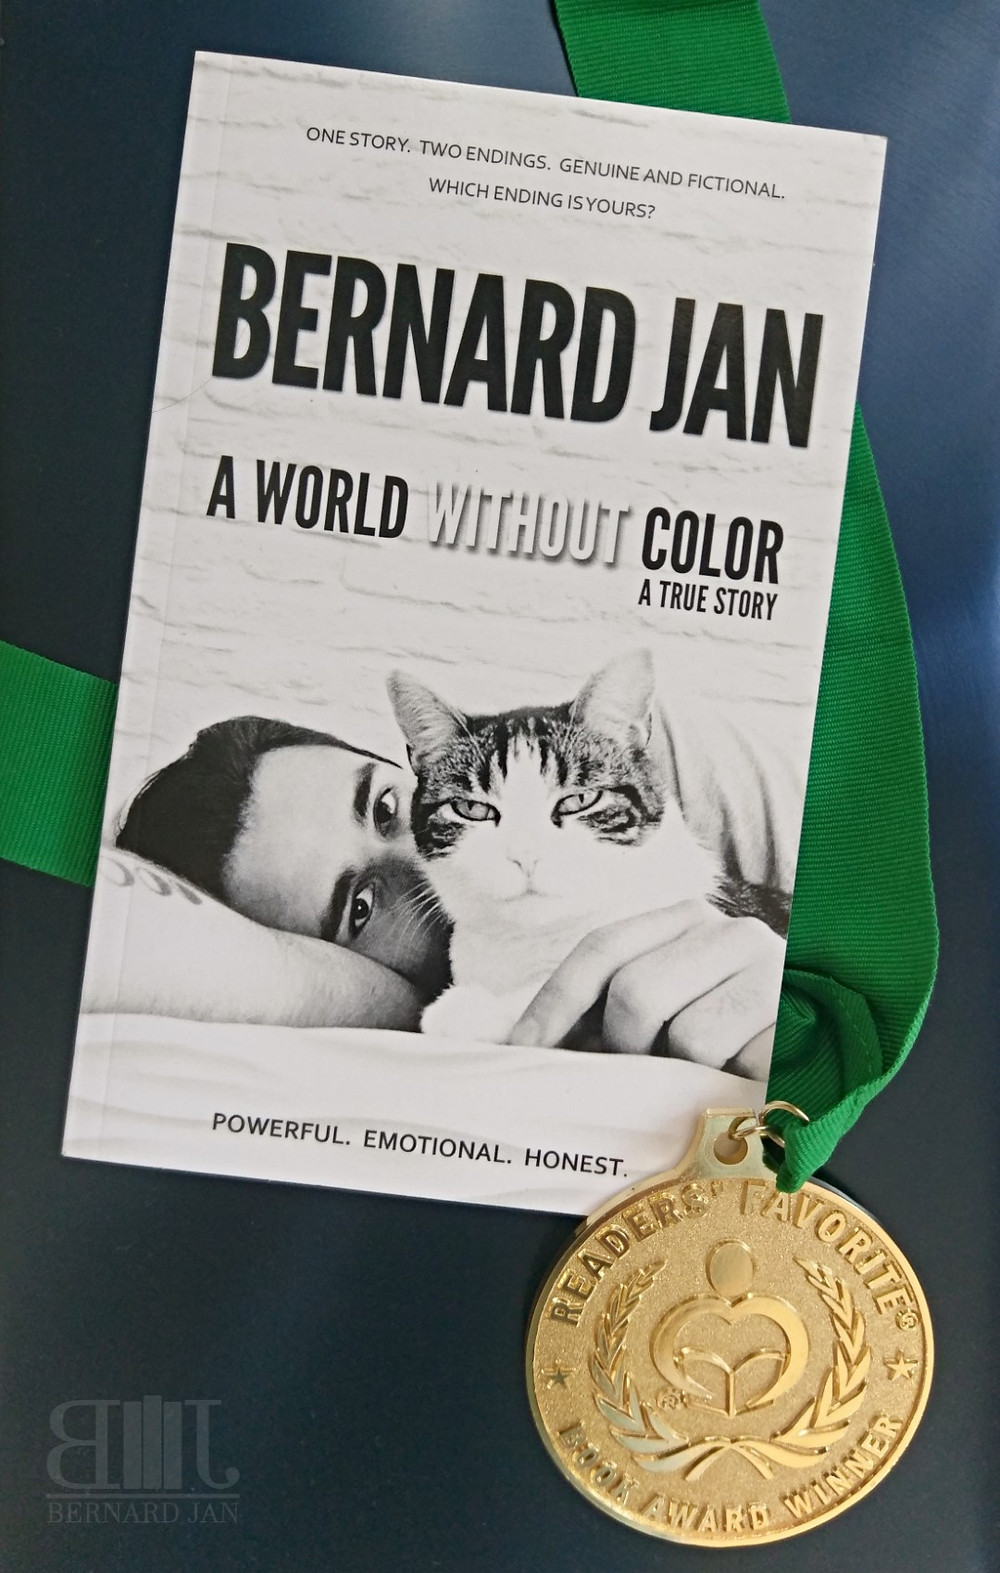 Readers' Favorite Gold Medal for A World Without Color by Bernard Jan